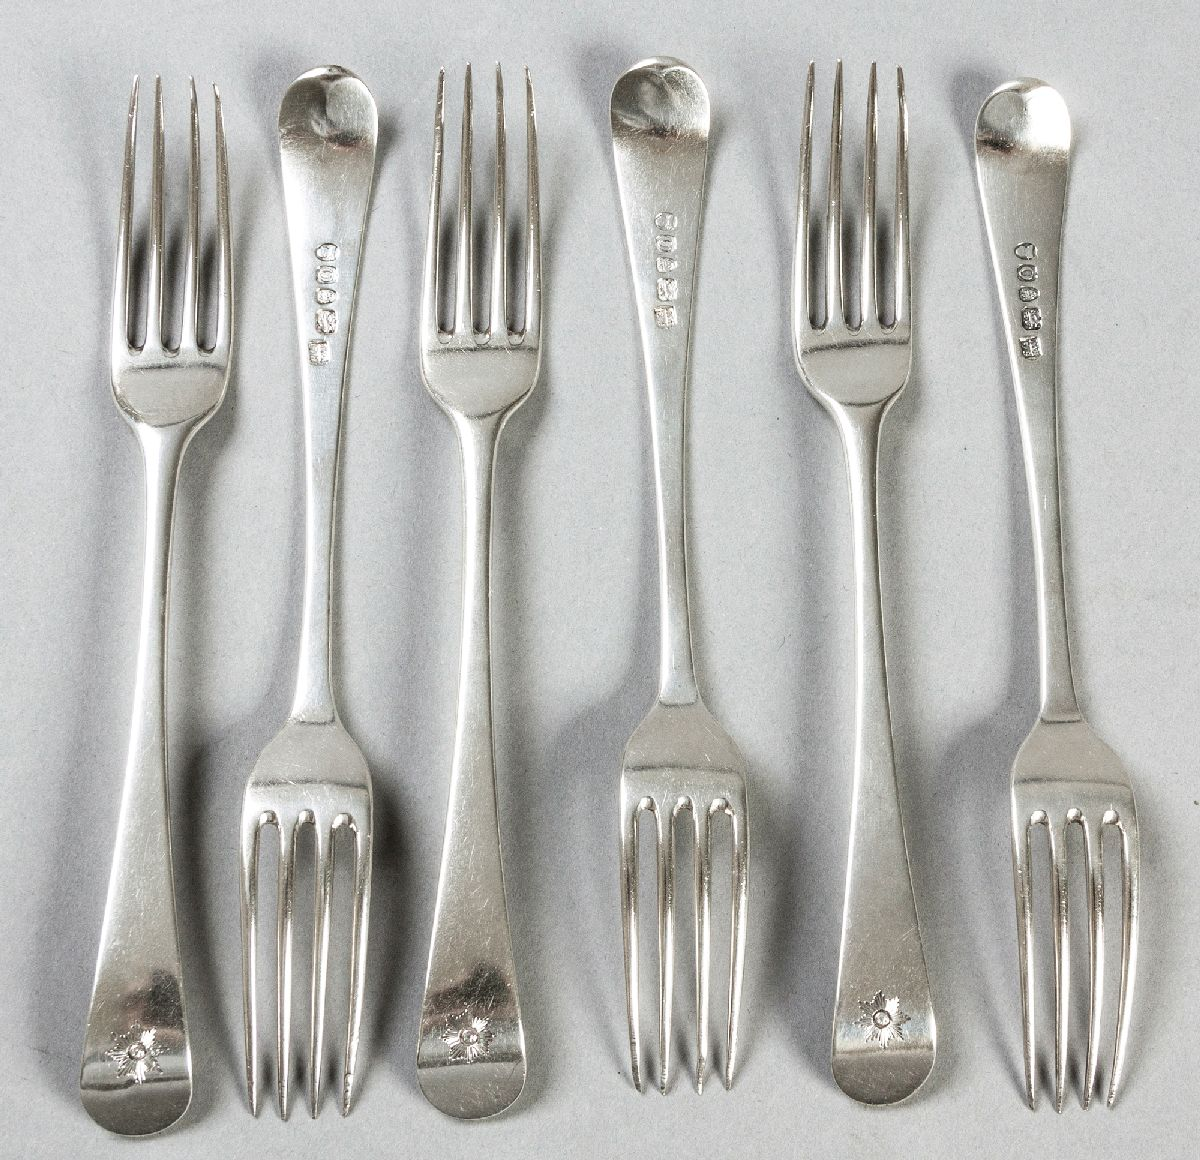 Lot 11 - A SET OF SIX GEORGE III OLD ENGLISH PATTERN SILVER FORKS, LONDON 1809, SAMUEL GODBEHERE & EDWARD